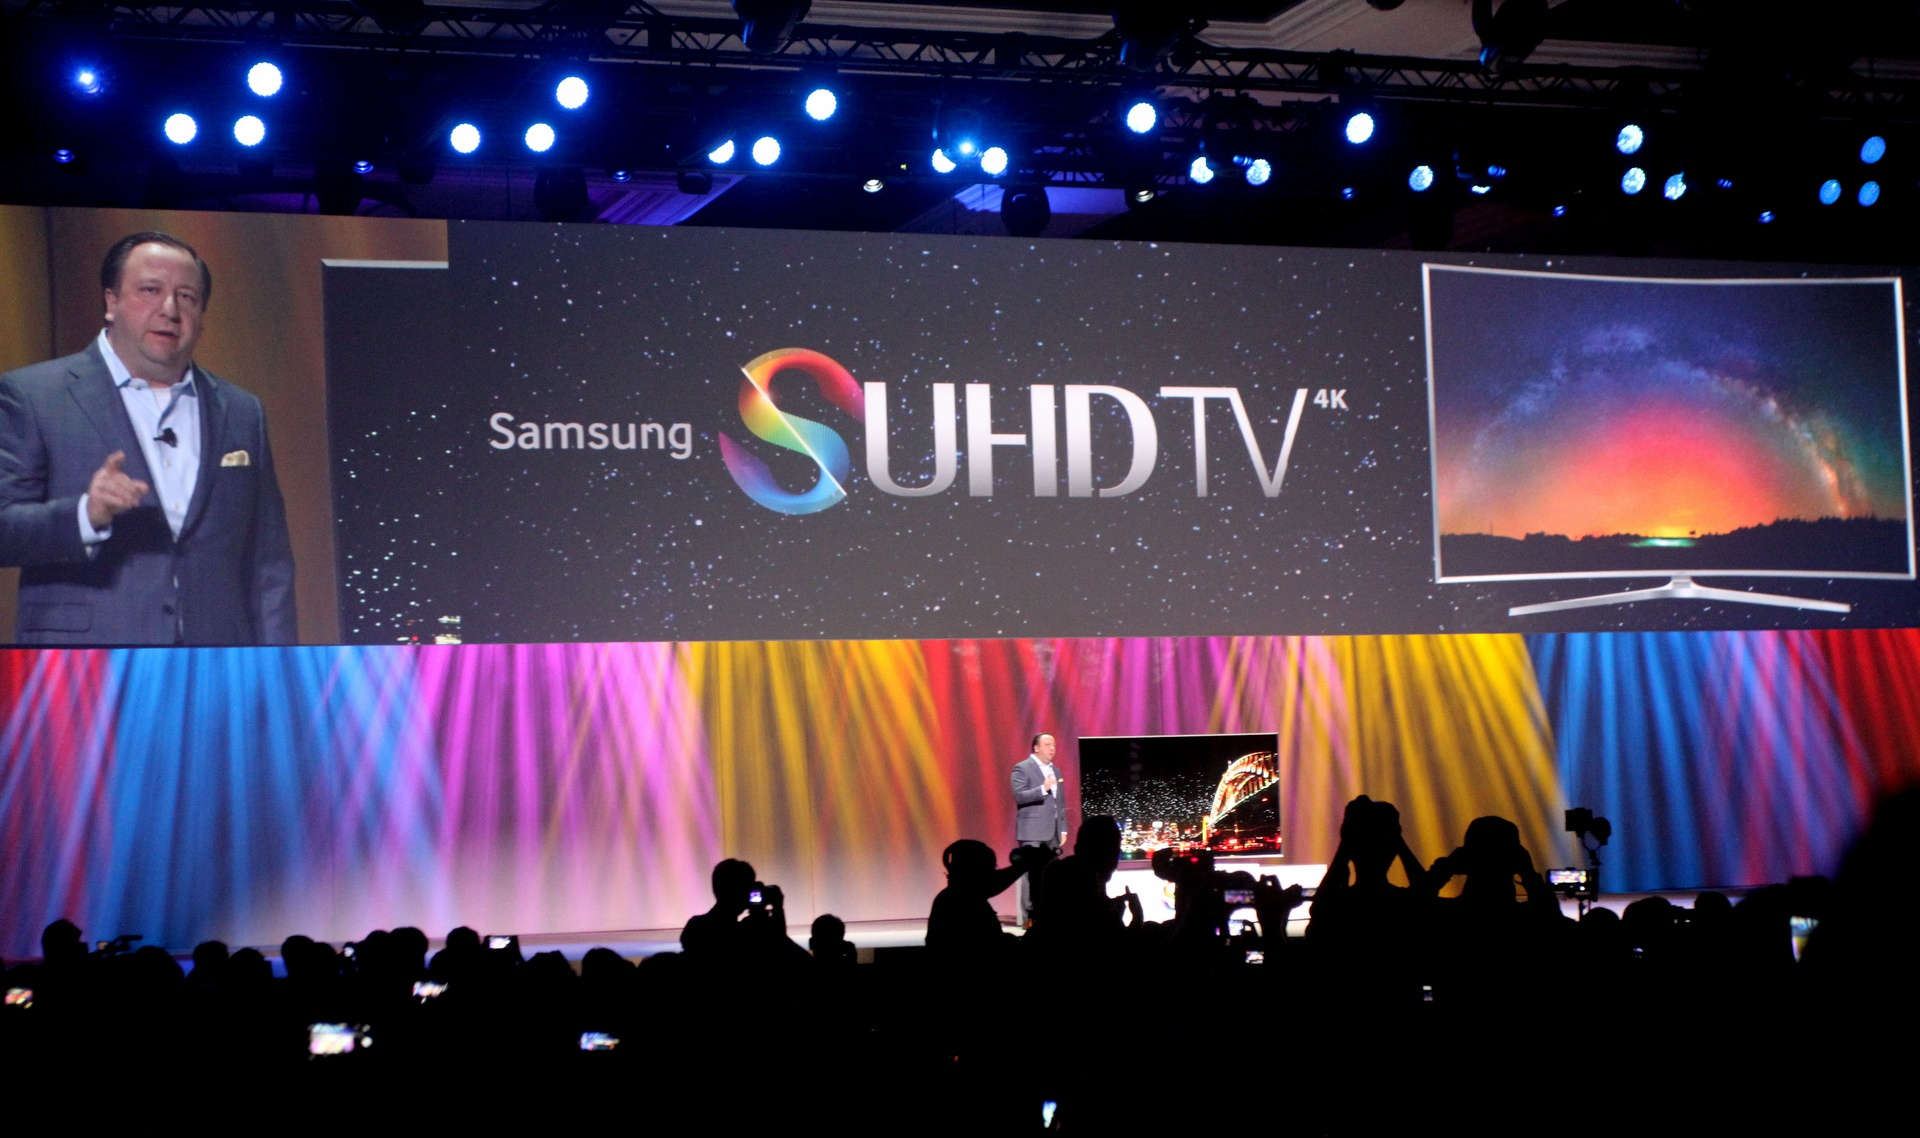 Samsung CES 2015 Press Conference